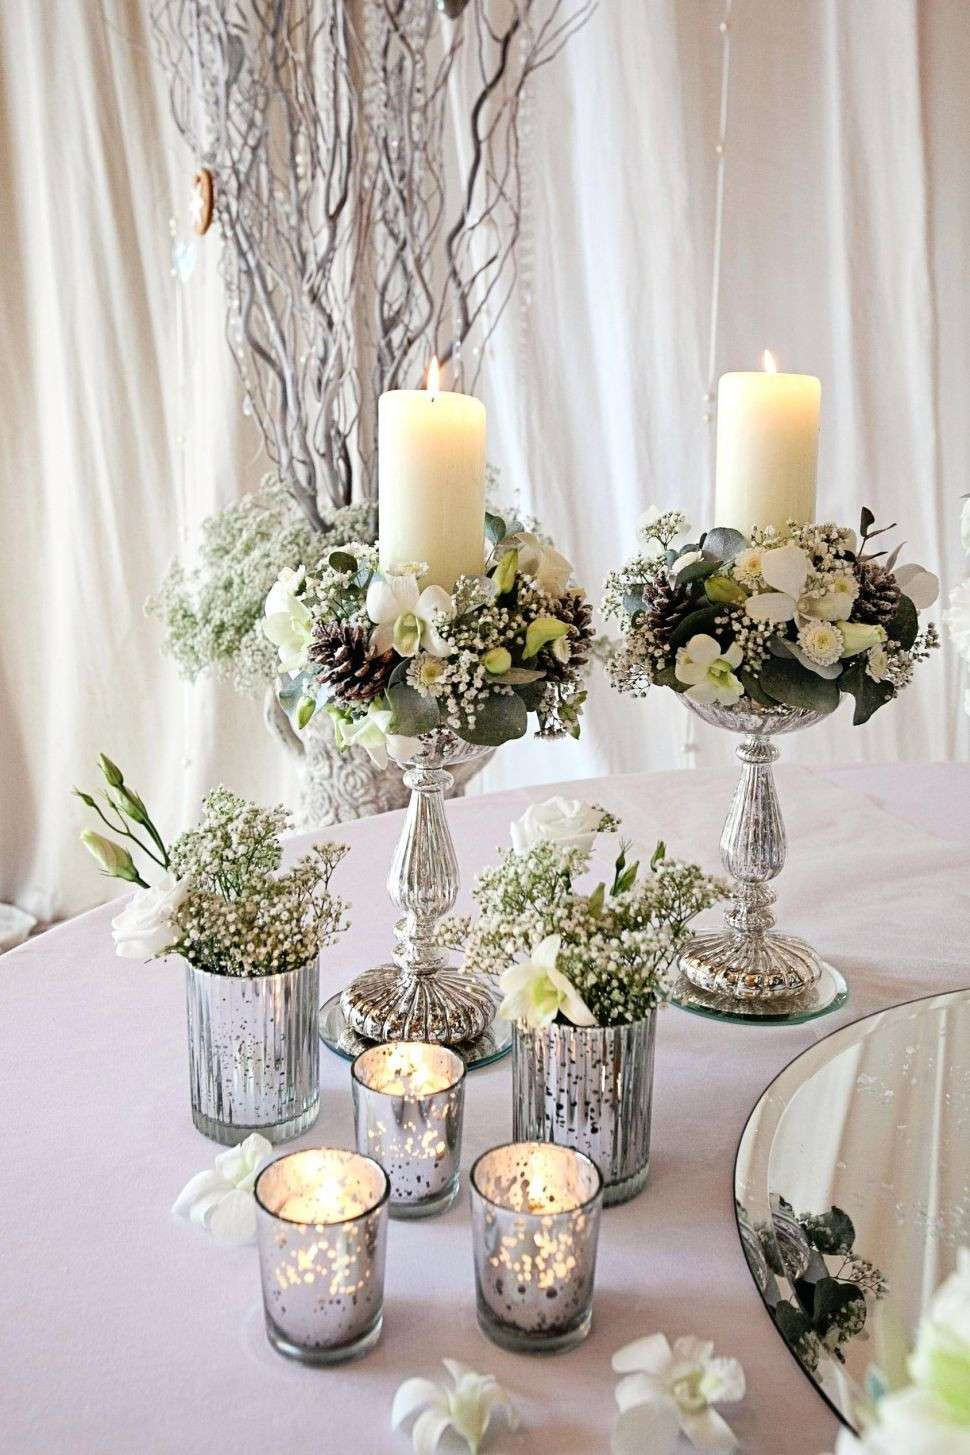 cheap candle vases of big bedroom ideas beautiful living room vases wholesale new h vases for big bedroom ideas beautiful living room vases wholesale new h vases big tall i 0d for cheap